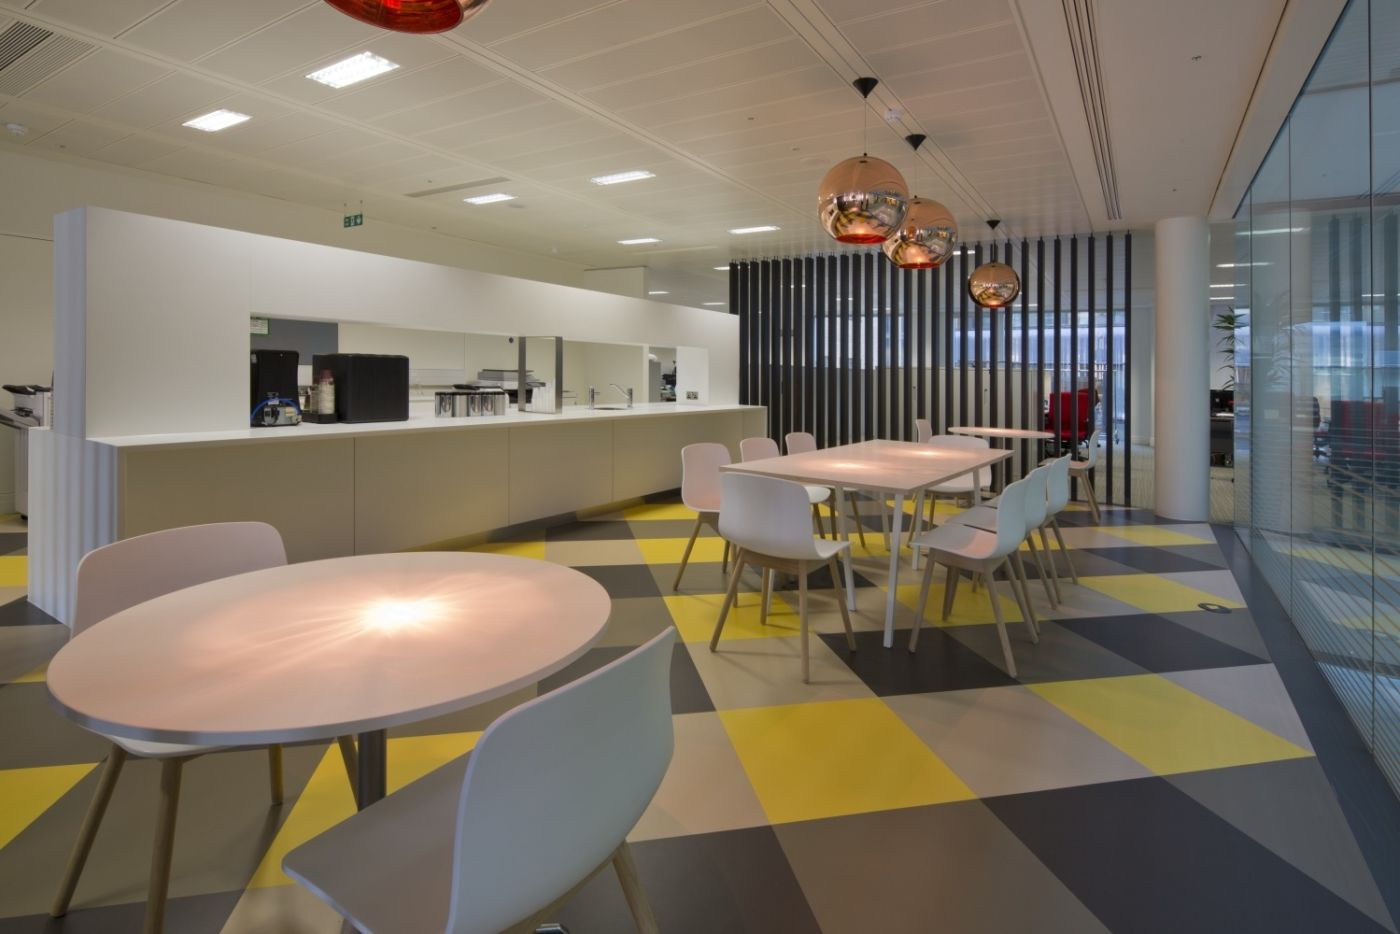 Funky kitchen seating area for staff